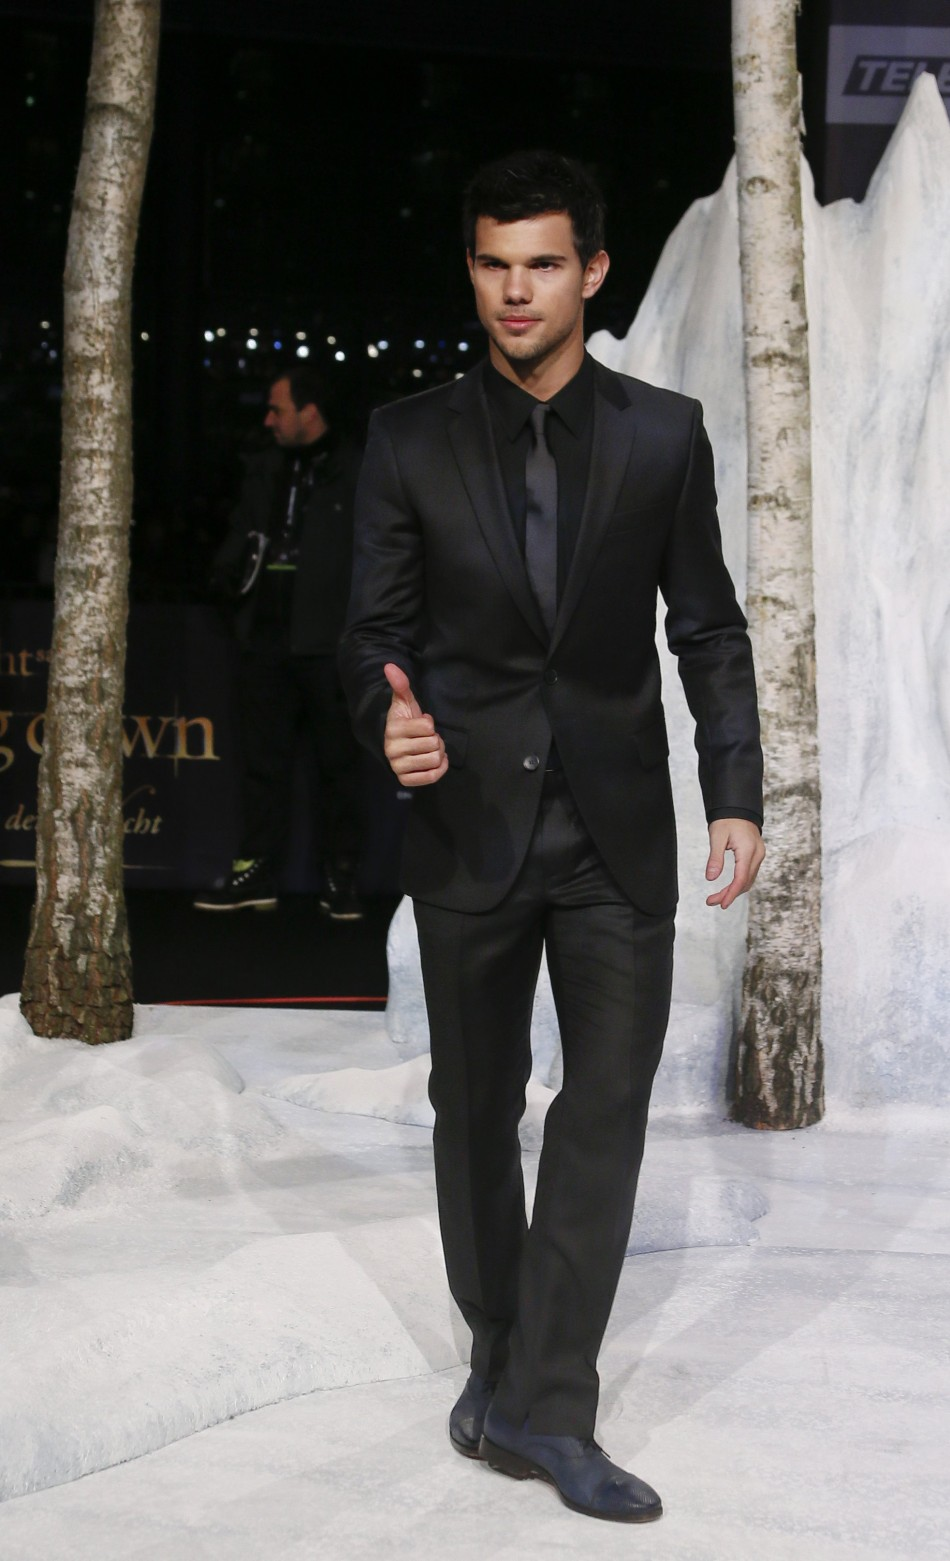 Lautner poses for pictures before German premiere of The Twilight Saga: Breaking Dawn Part 2 in Berlin